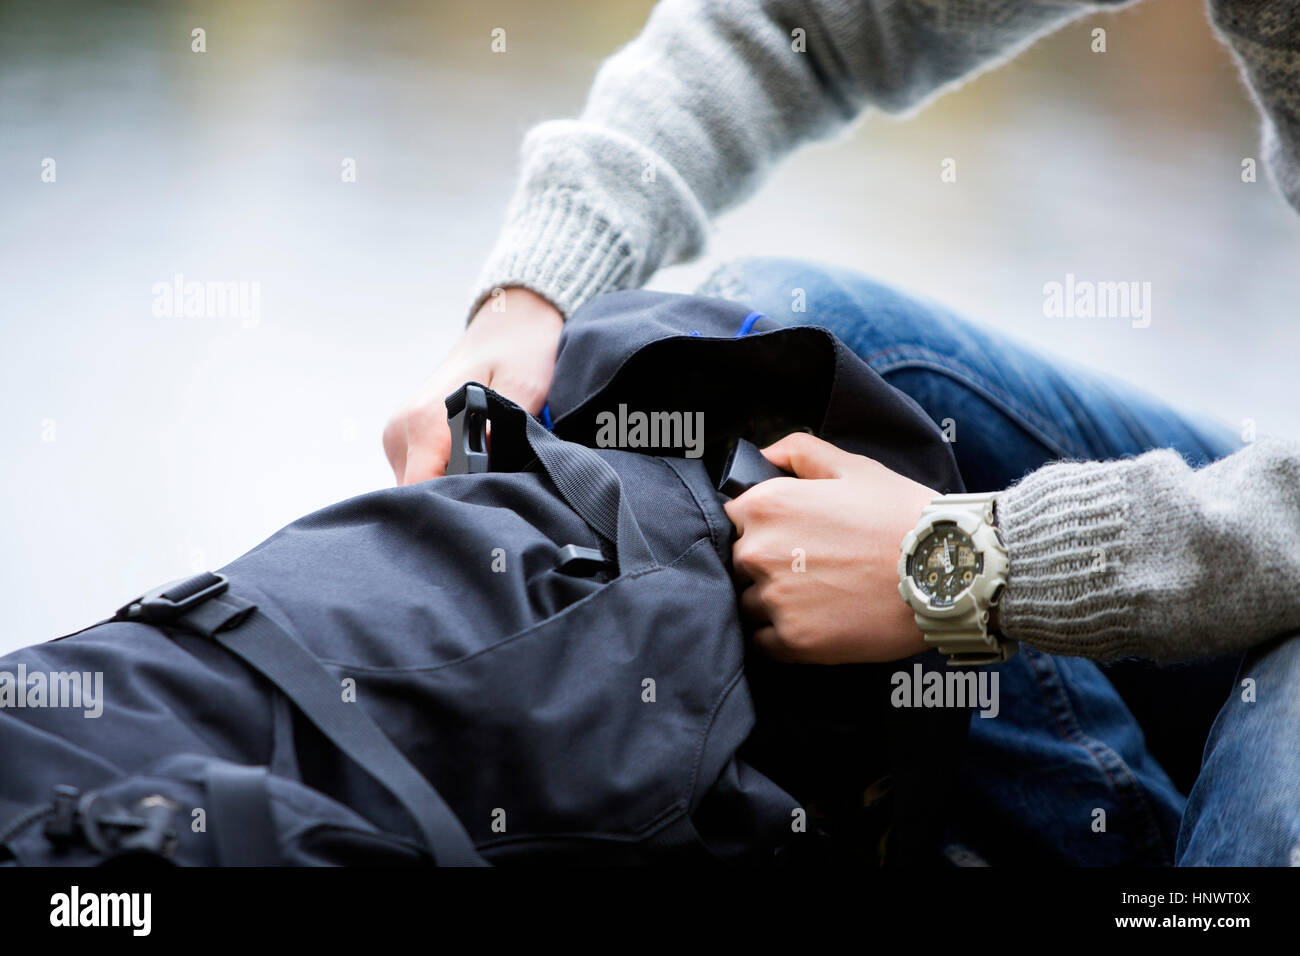 Male Hiker Opening Backpack At Campsite - Stock Image